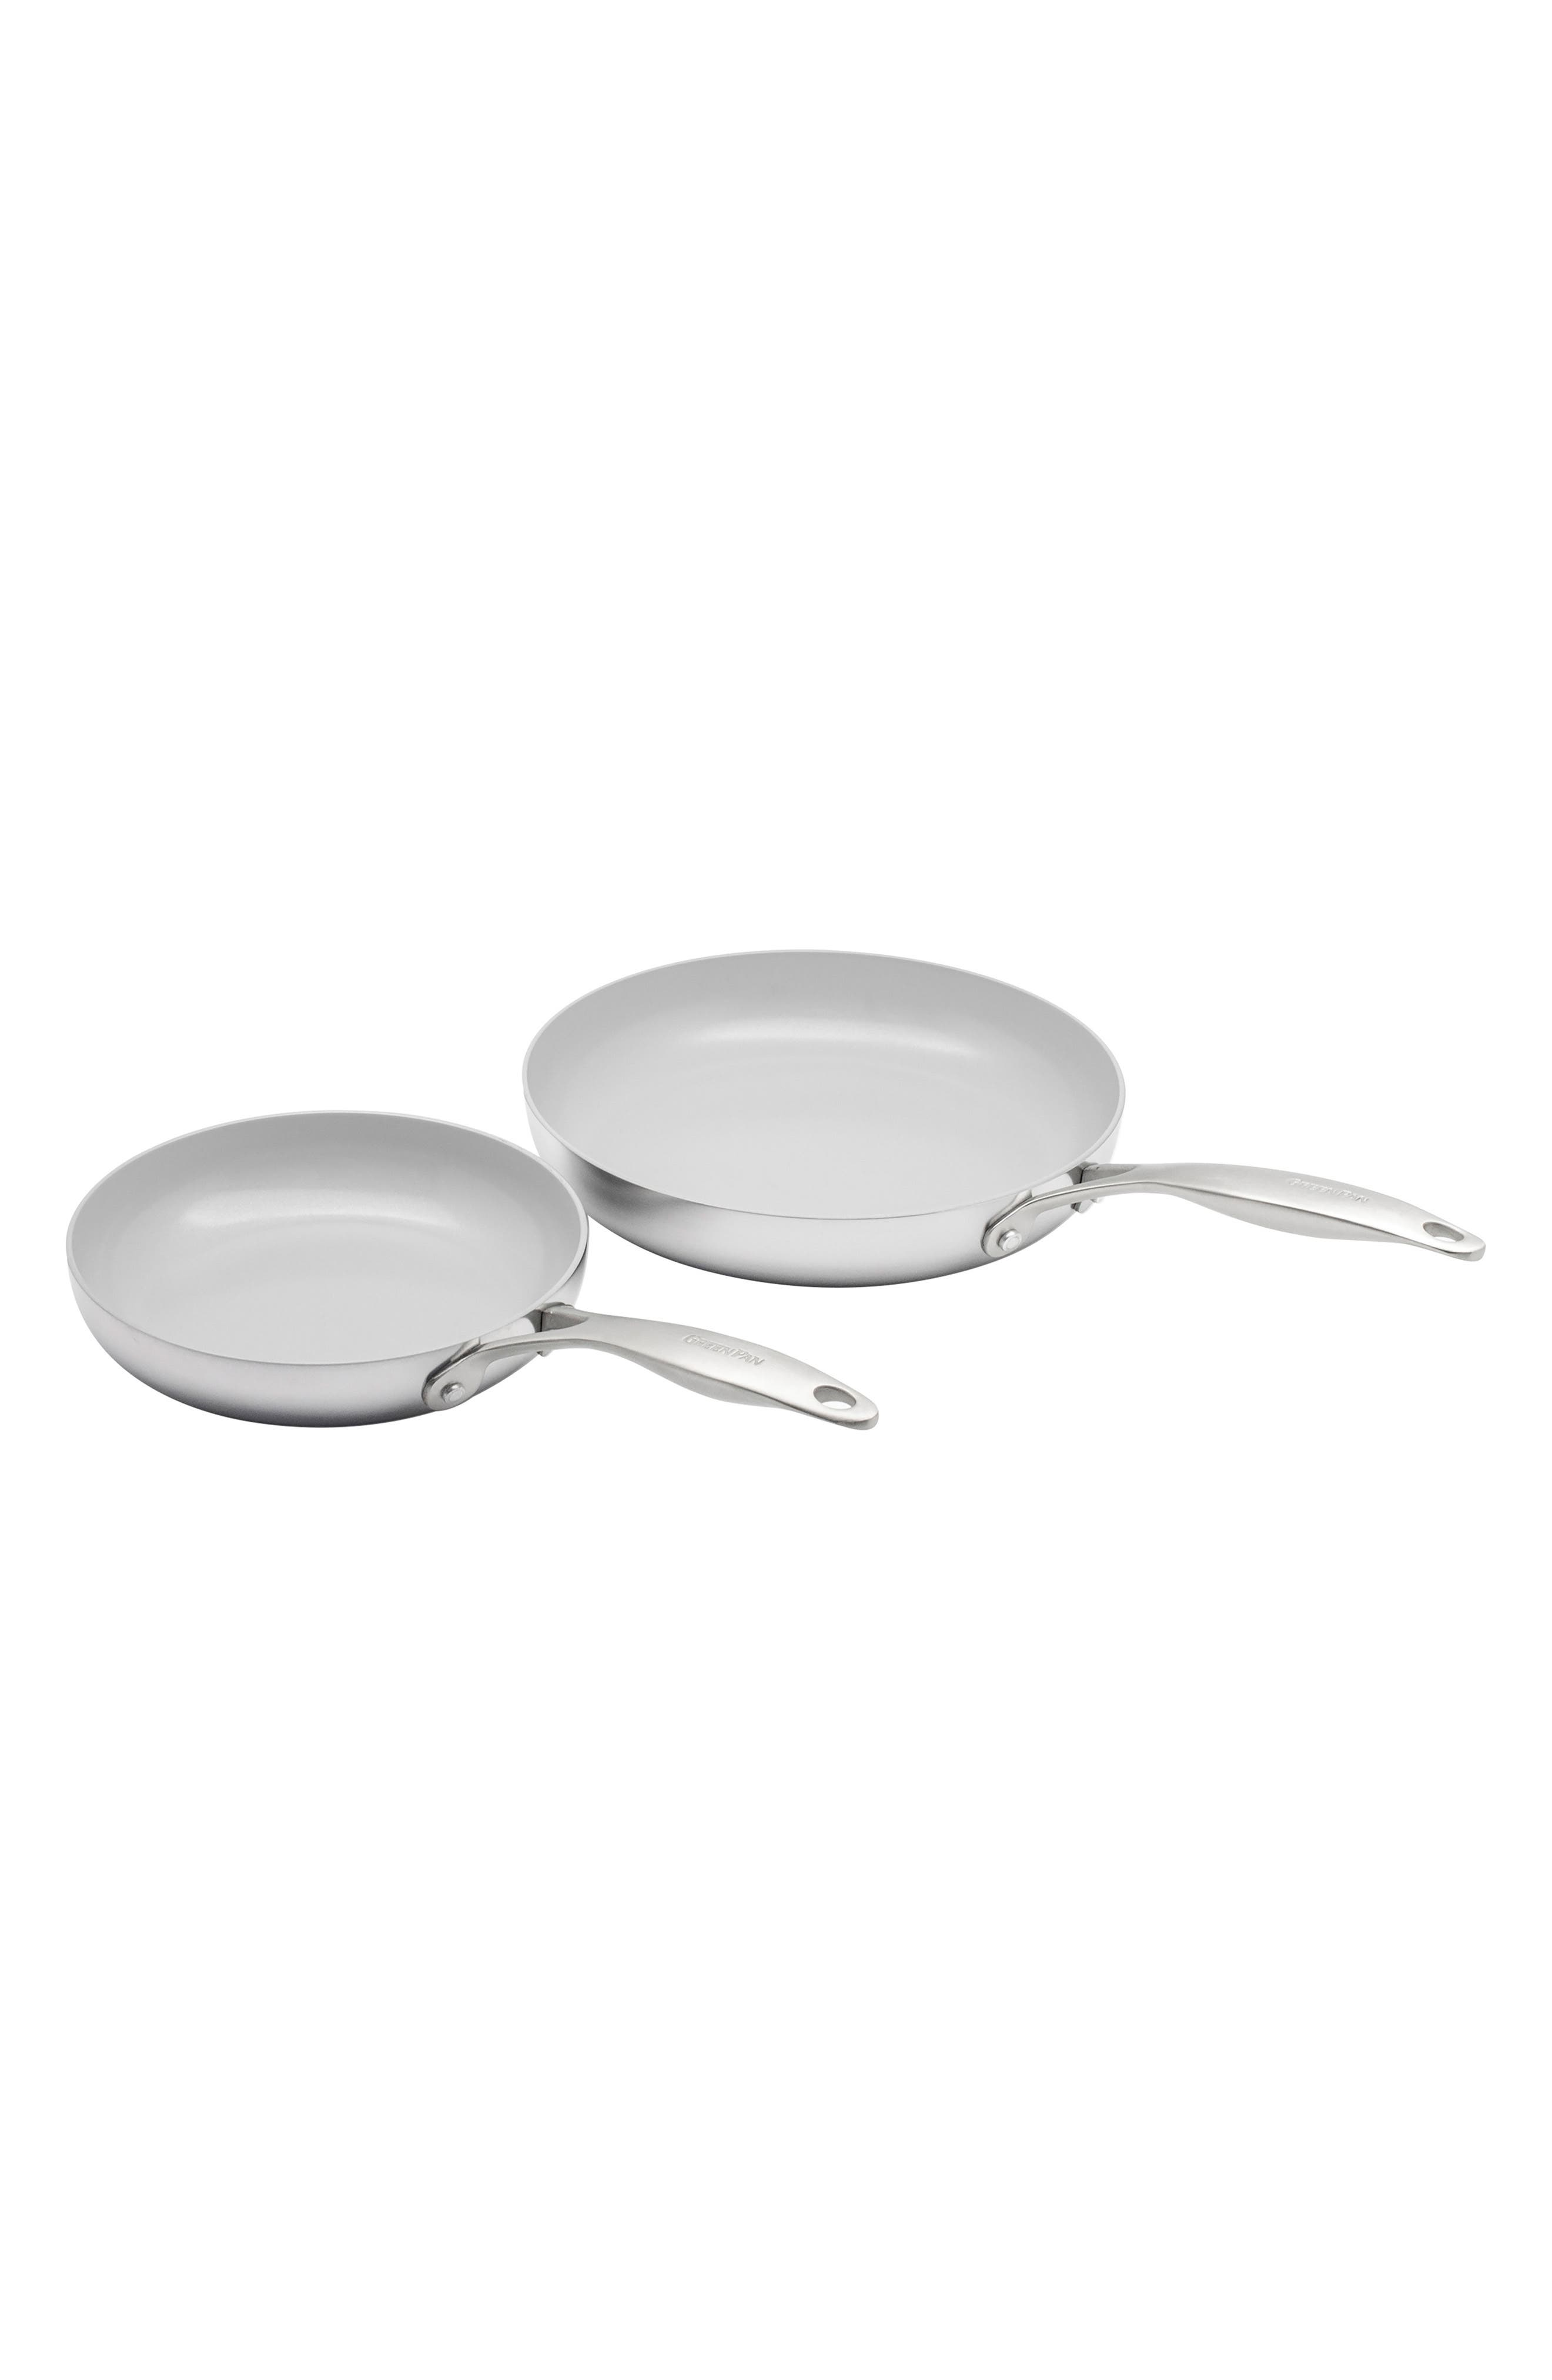 Main Image - GreenPan Venice Pro 8-Inch & 10-Inch Multilayer Stainless Steel Ceramic Nonstick Frying Pan Set